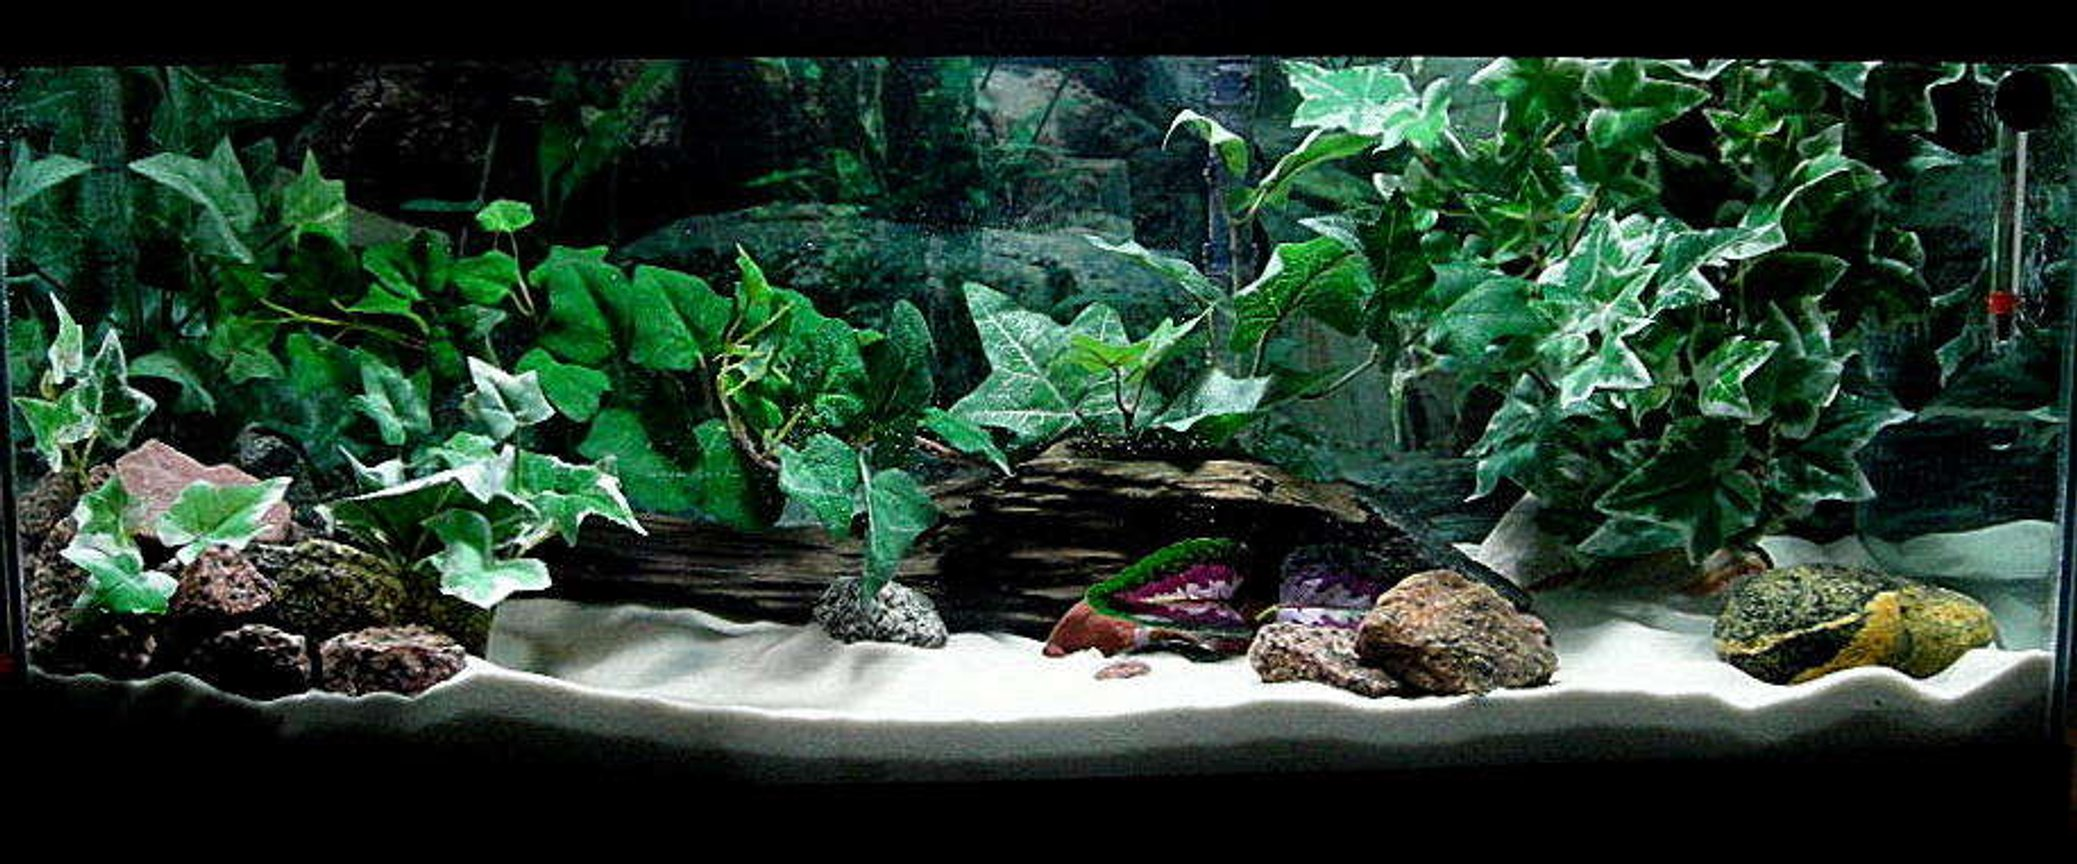 20 gallons freshwater fish tank (mostly fish and non-living decorations) - If you do not give this tank a high rating please tell me why and what you think it needs.. Thanks.